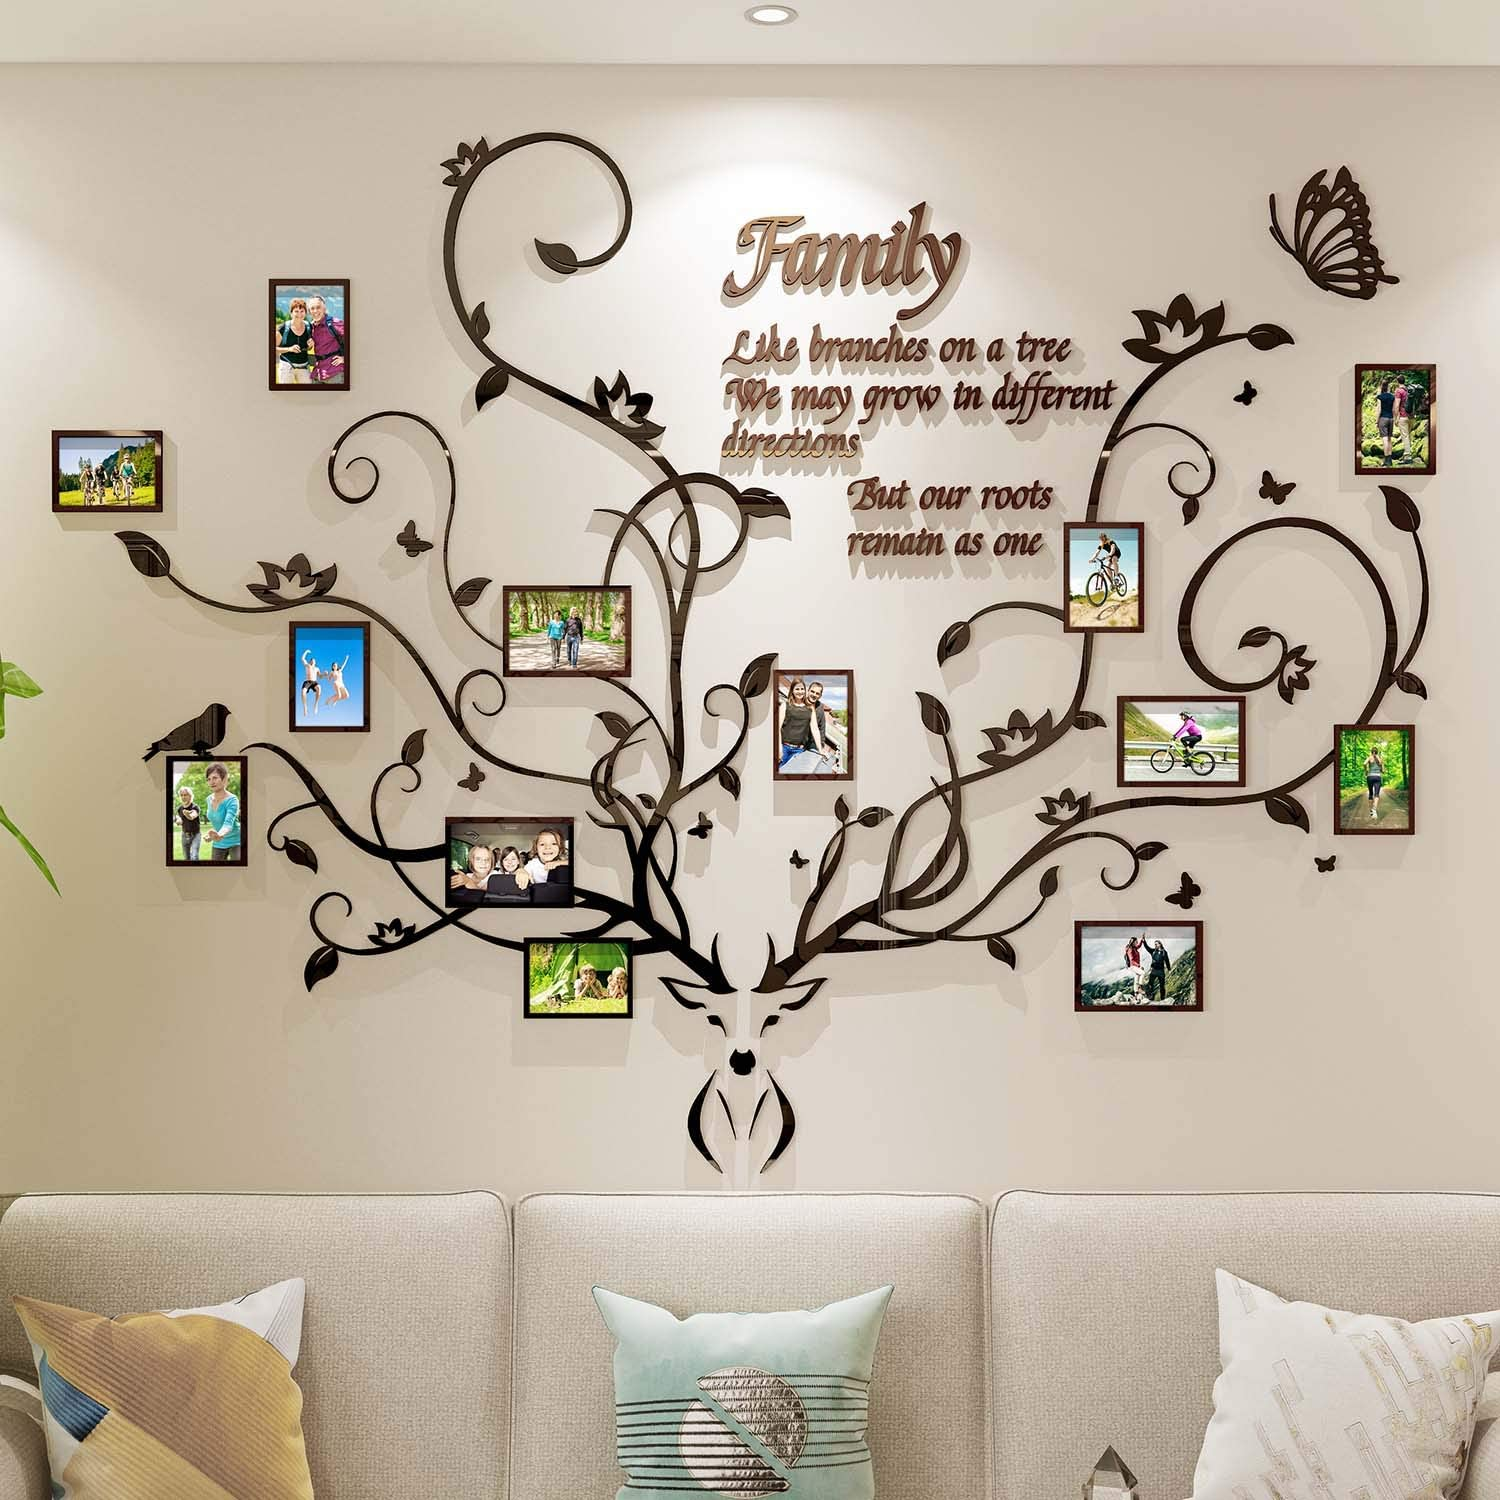 DecorSmart Antlers Family Tree Wall Decor for Living Room, 3D Removable Picture Frame Collage DIY Acrylic Stickers with Deer Head and Quote Family Like Branches on a Tree